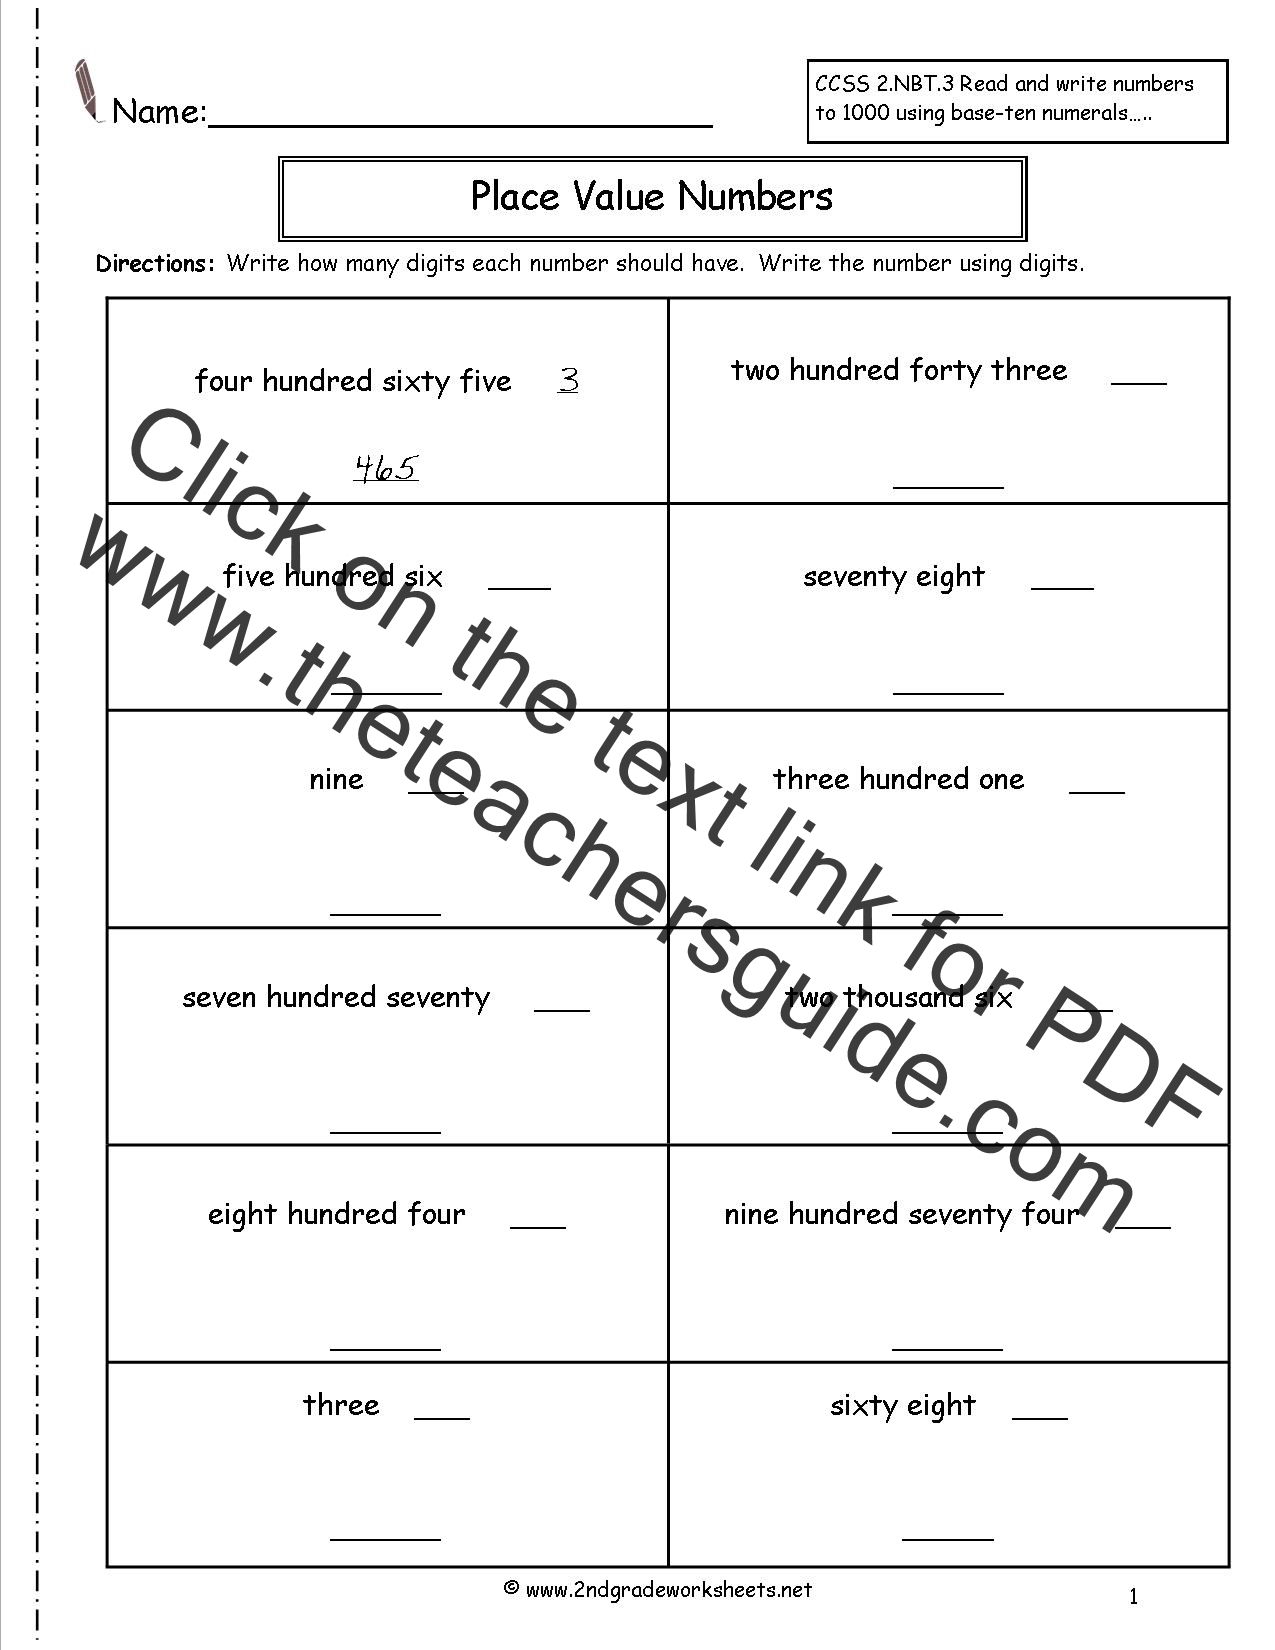 With Place Value Hundreds Worksheets Also Digit Place Value Worksheets ...